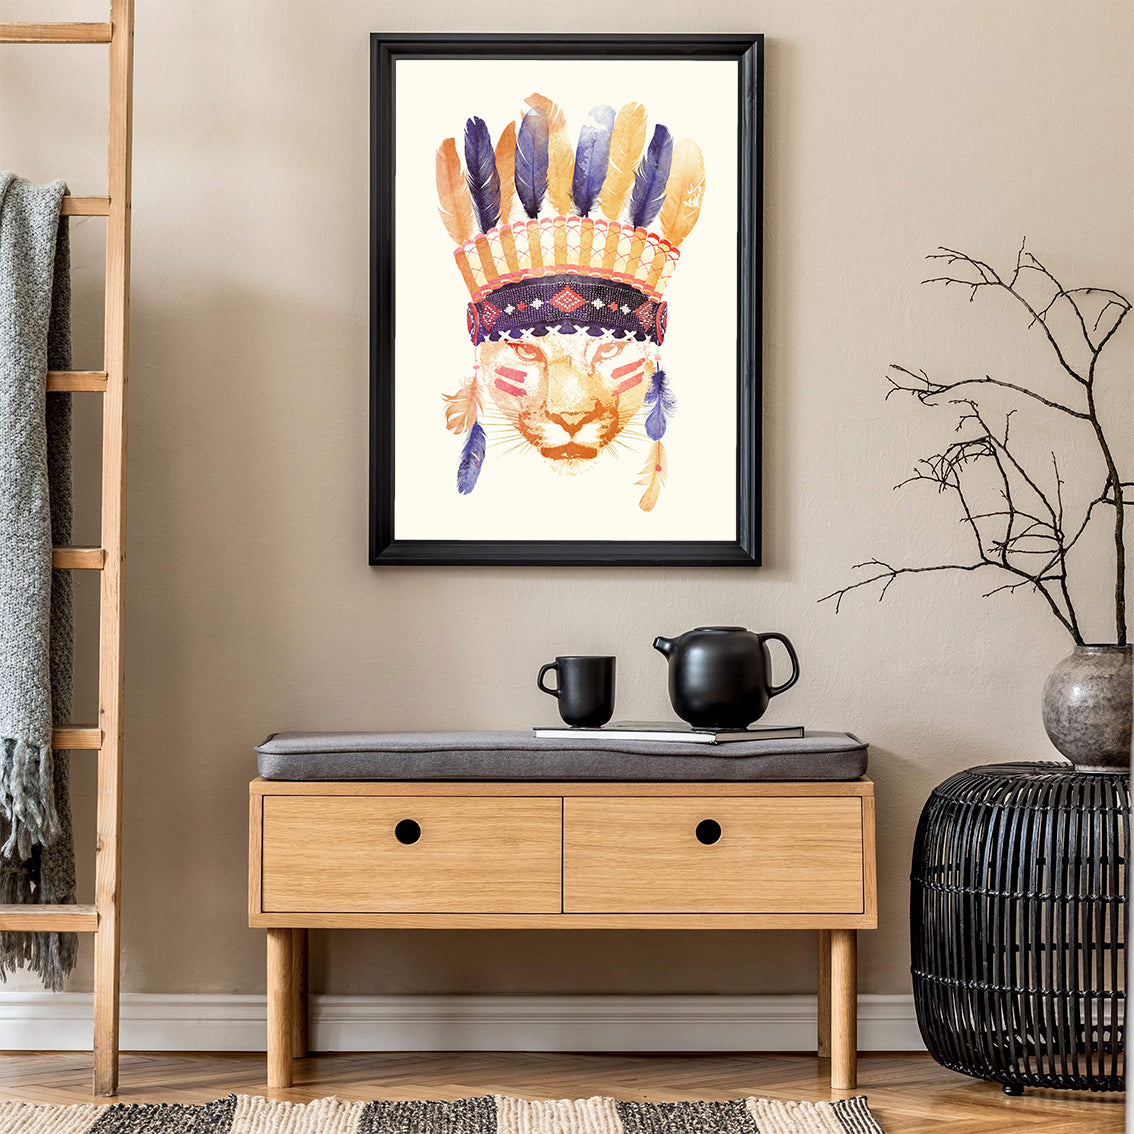 Watercolour illustration print by Robert Farkas, with a tiger wearing an Indian hat, in hallway